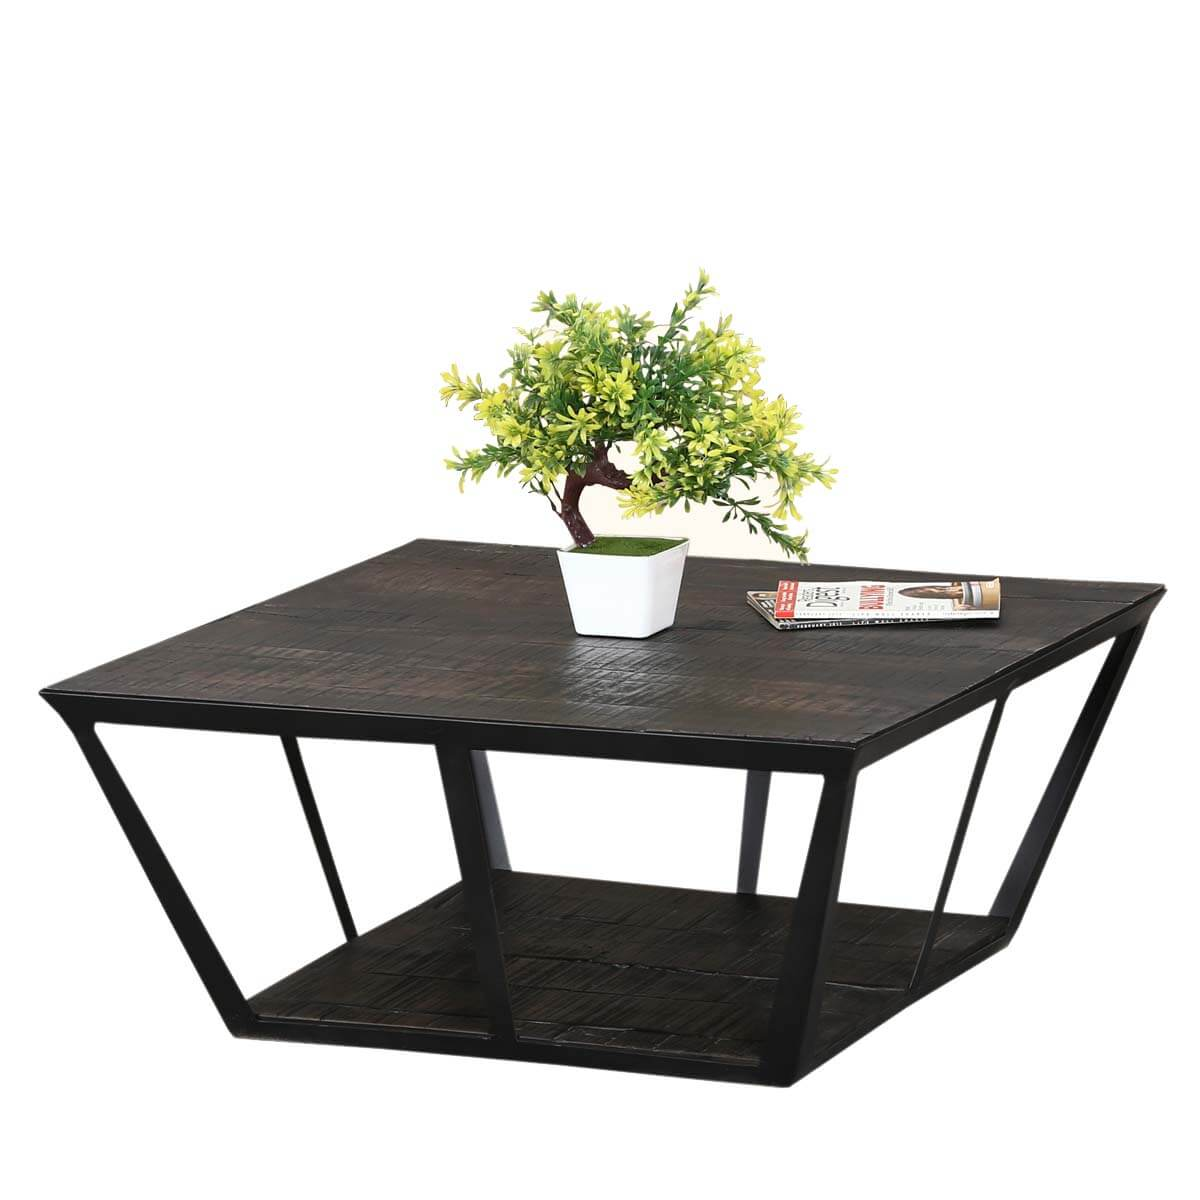 "Industrial Midnight Mango Wood & Iron 27"" Sq 2 Tier Coffee Table"